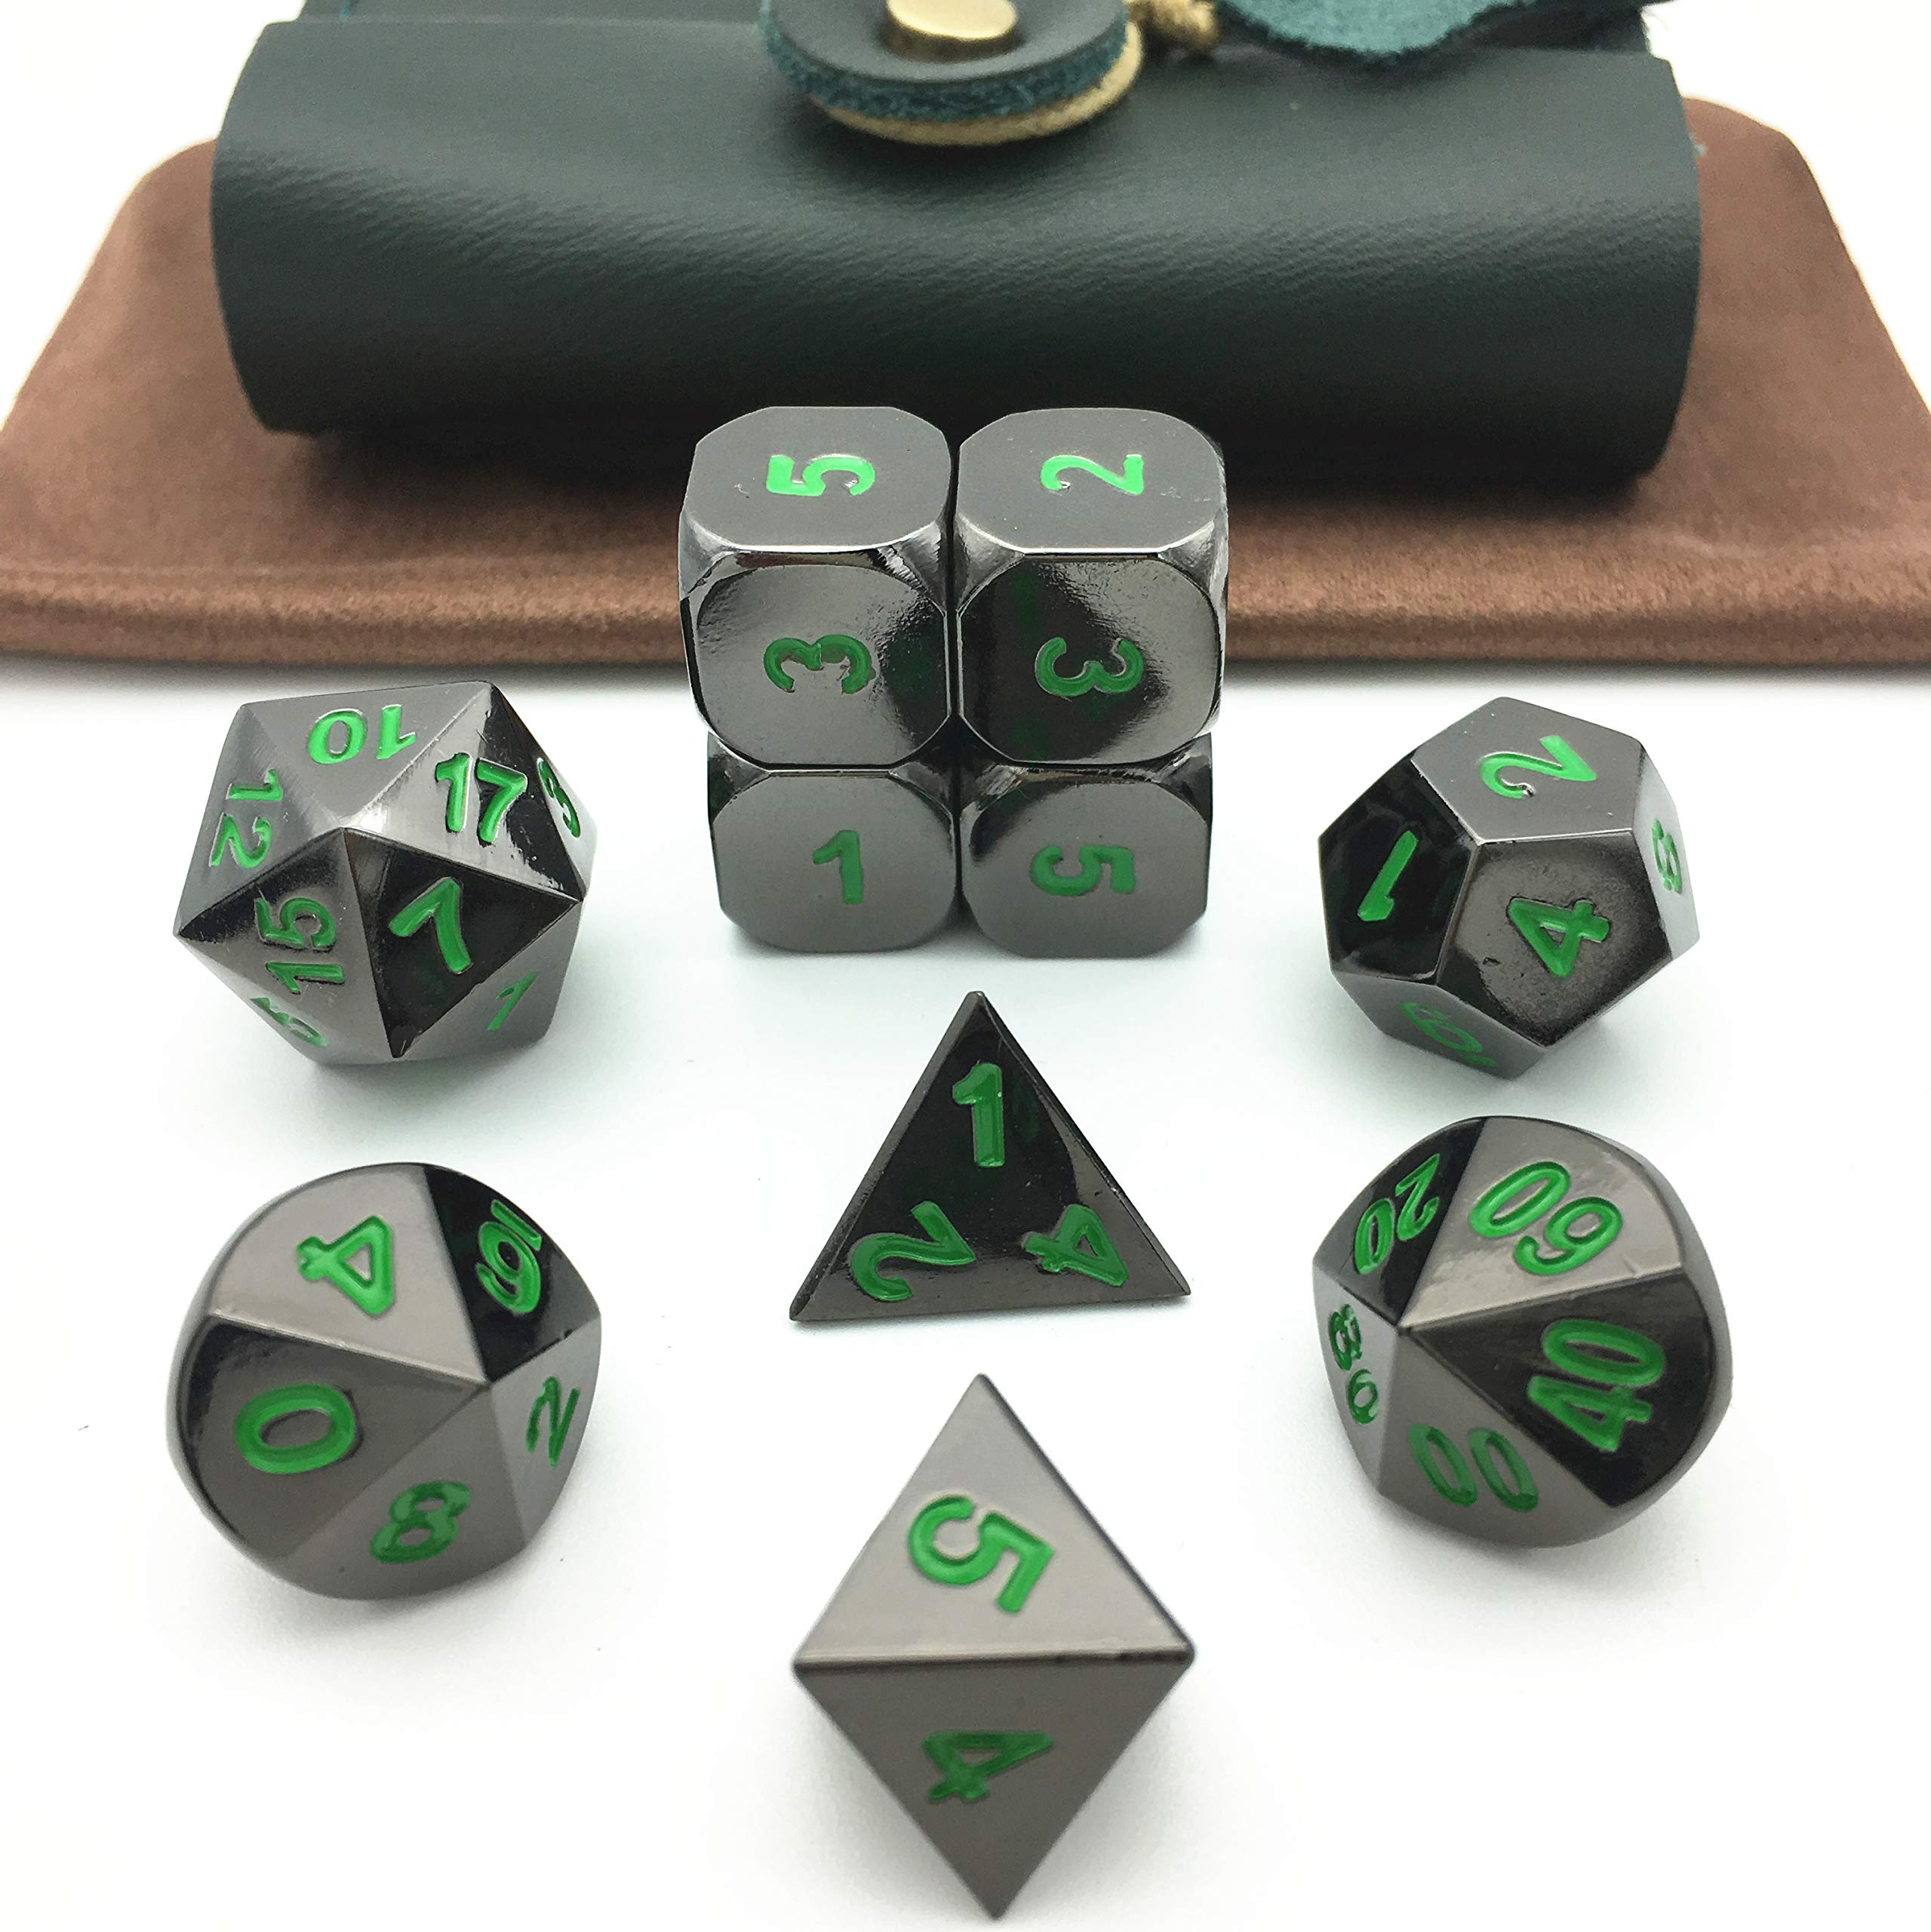 Truewon Solid Metal Polyhedral Dice for Dungeons and Dragons, Pathfinder and Other RPGs. (Set of 10+ Green PU Box / Bright Black & Green Numbers)